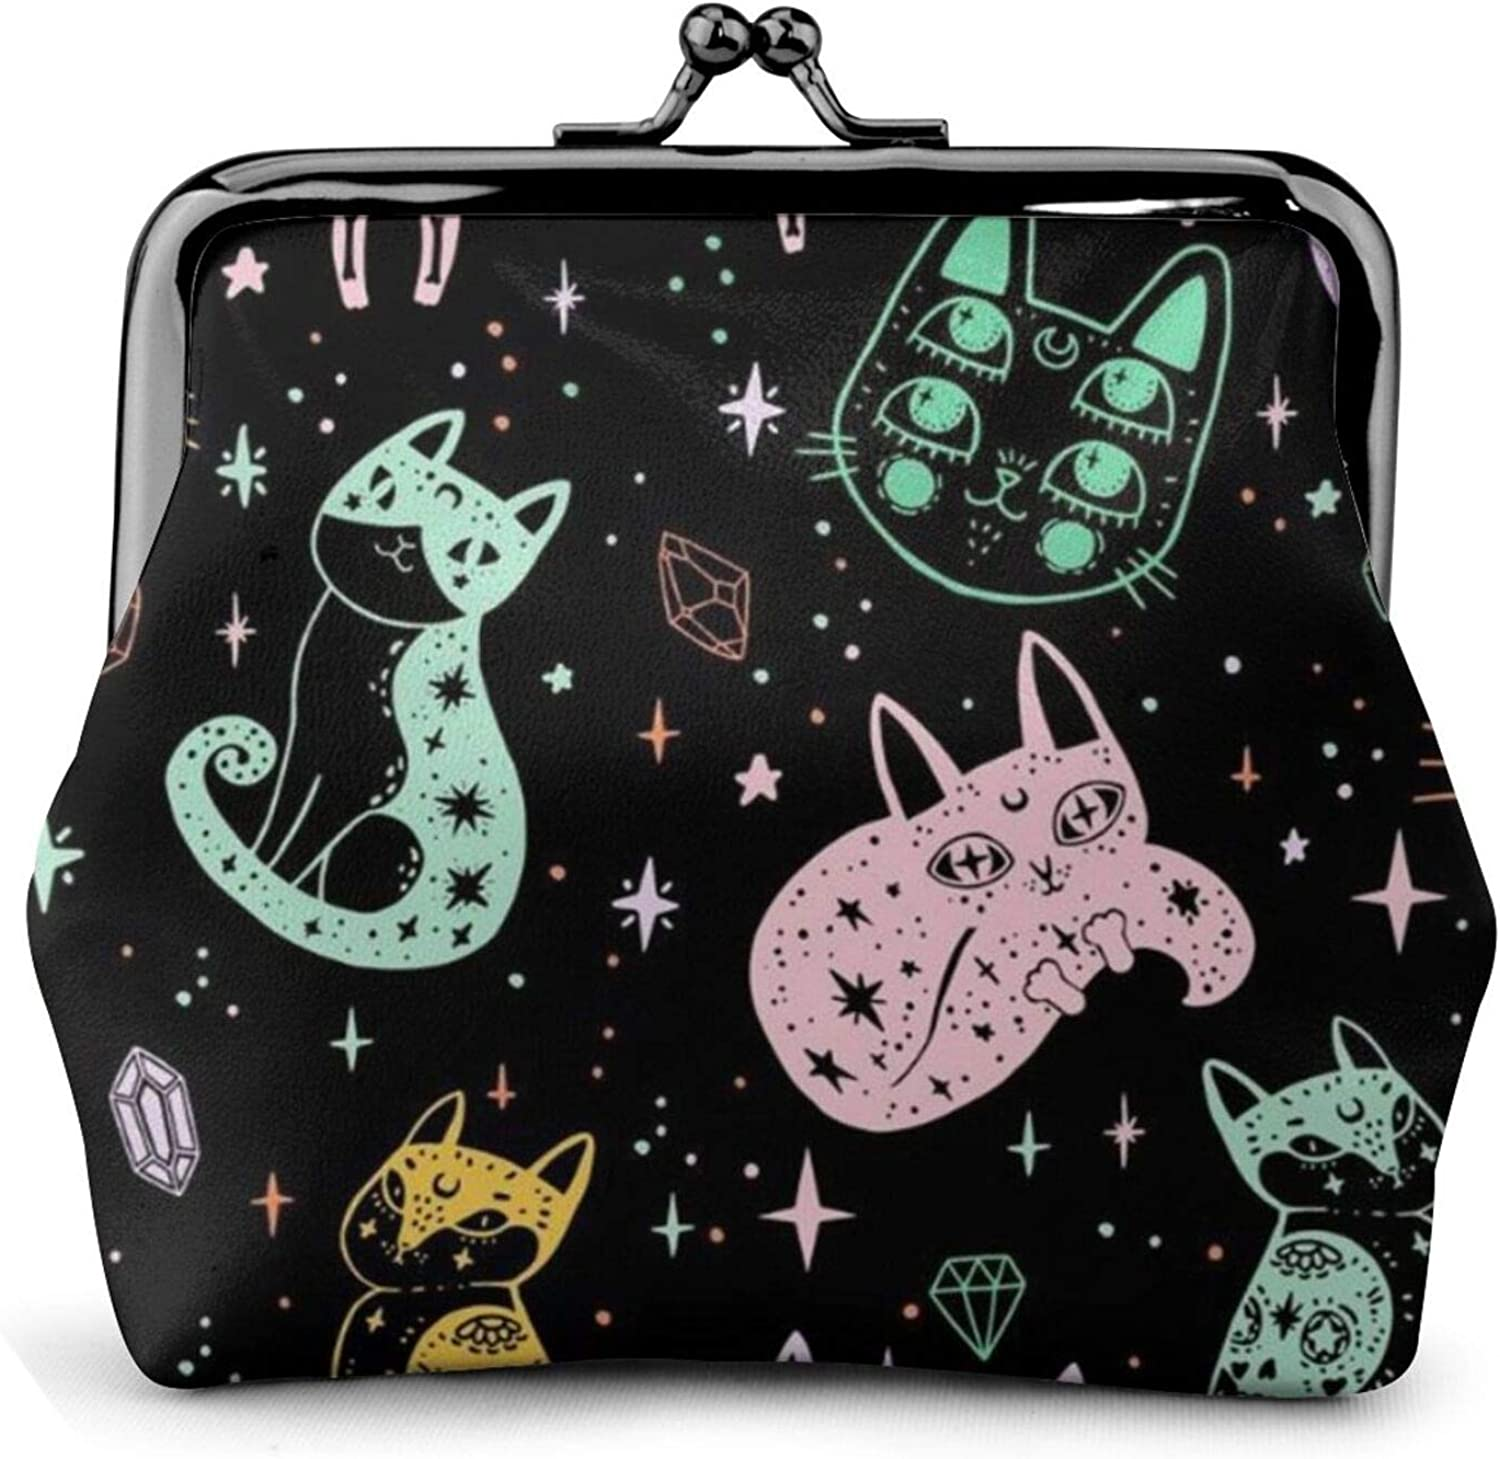 Coin Purse Luxury goods Witch'S Cat Wallet Makeup Travel Buckle Washington Mall Chang Leather